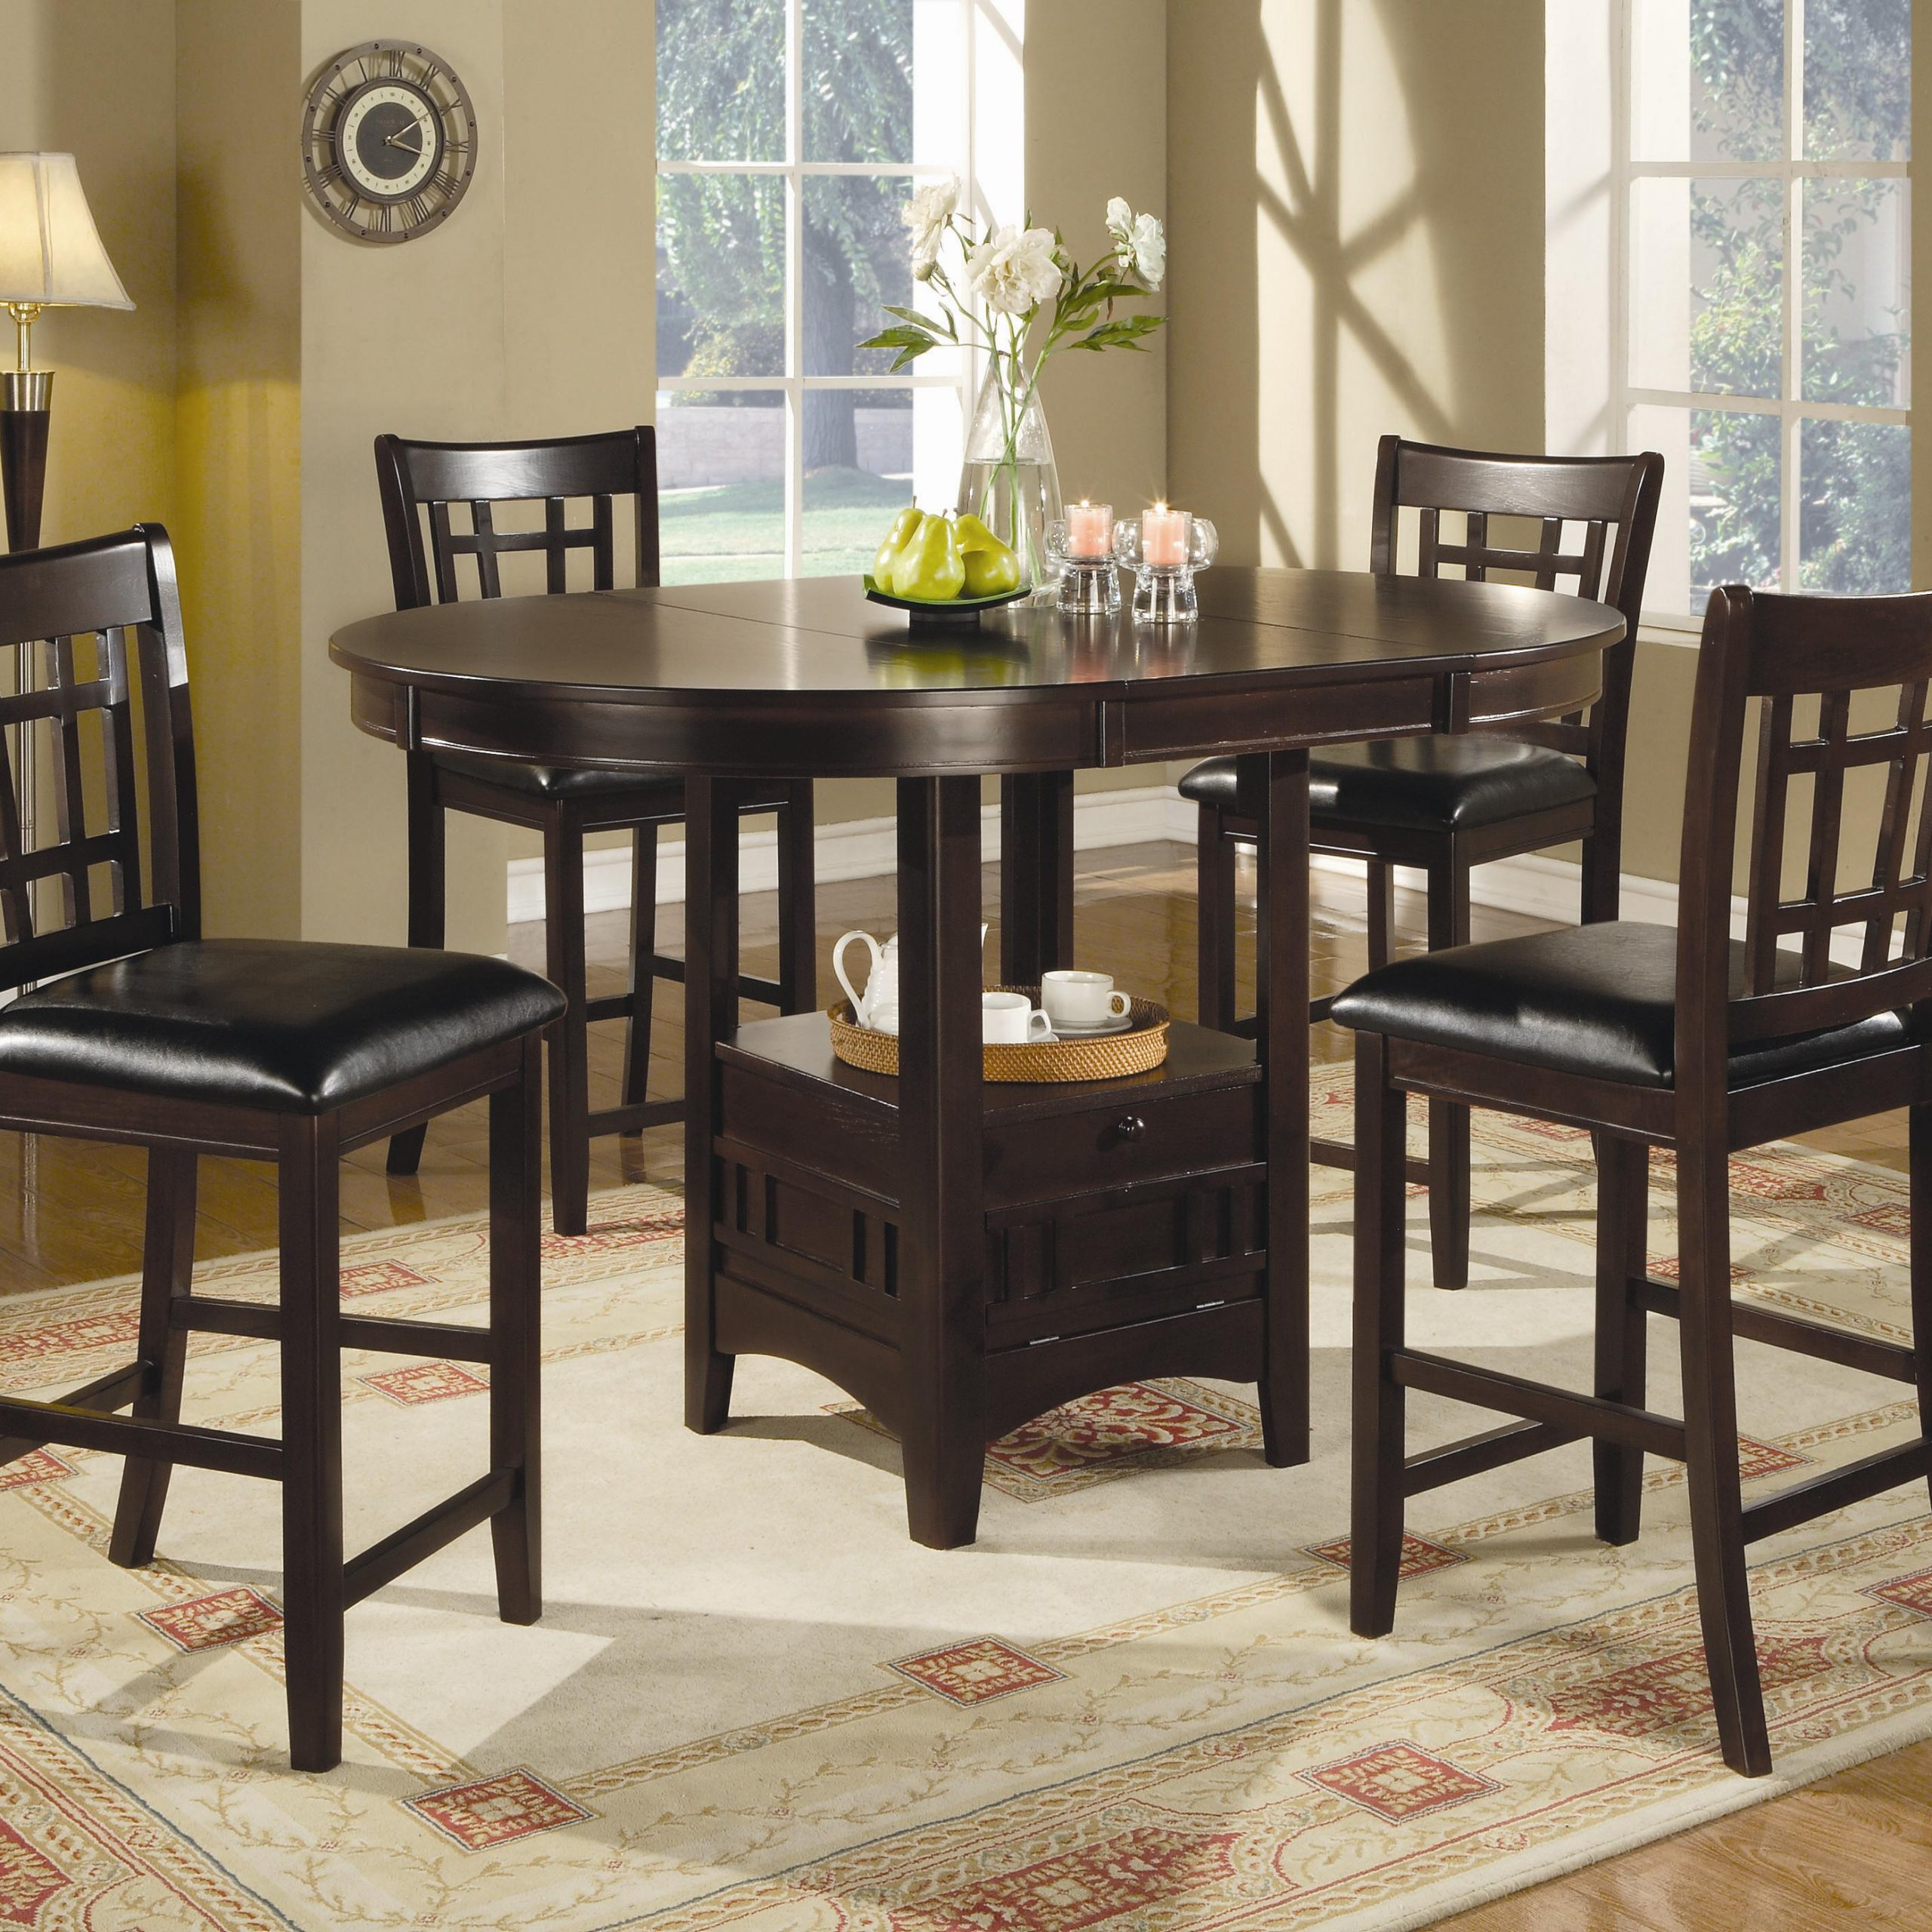 Lavon 7 Piece Counter Table And Chair Set Regarding Most Current Avondale Counter Height Dining Tables (View 15 of 25)